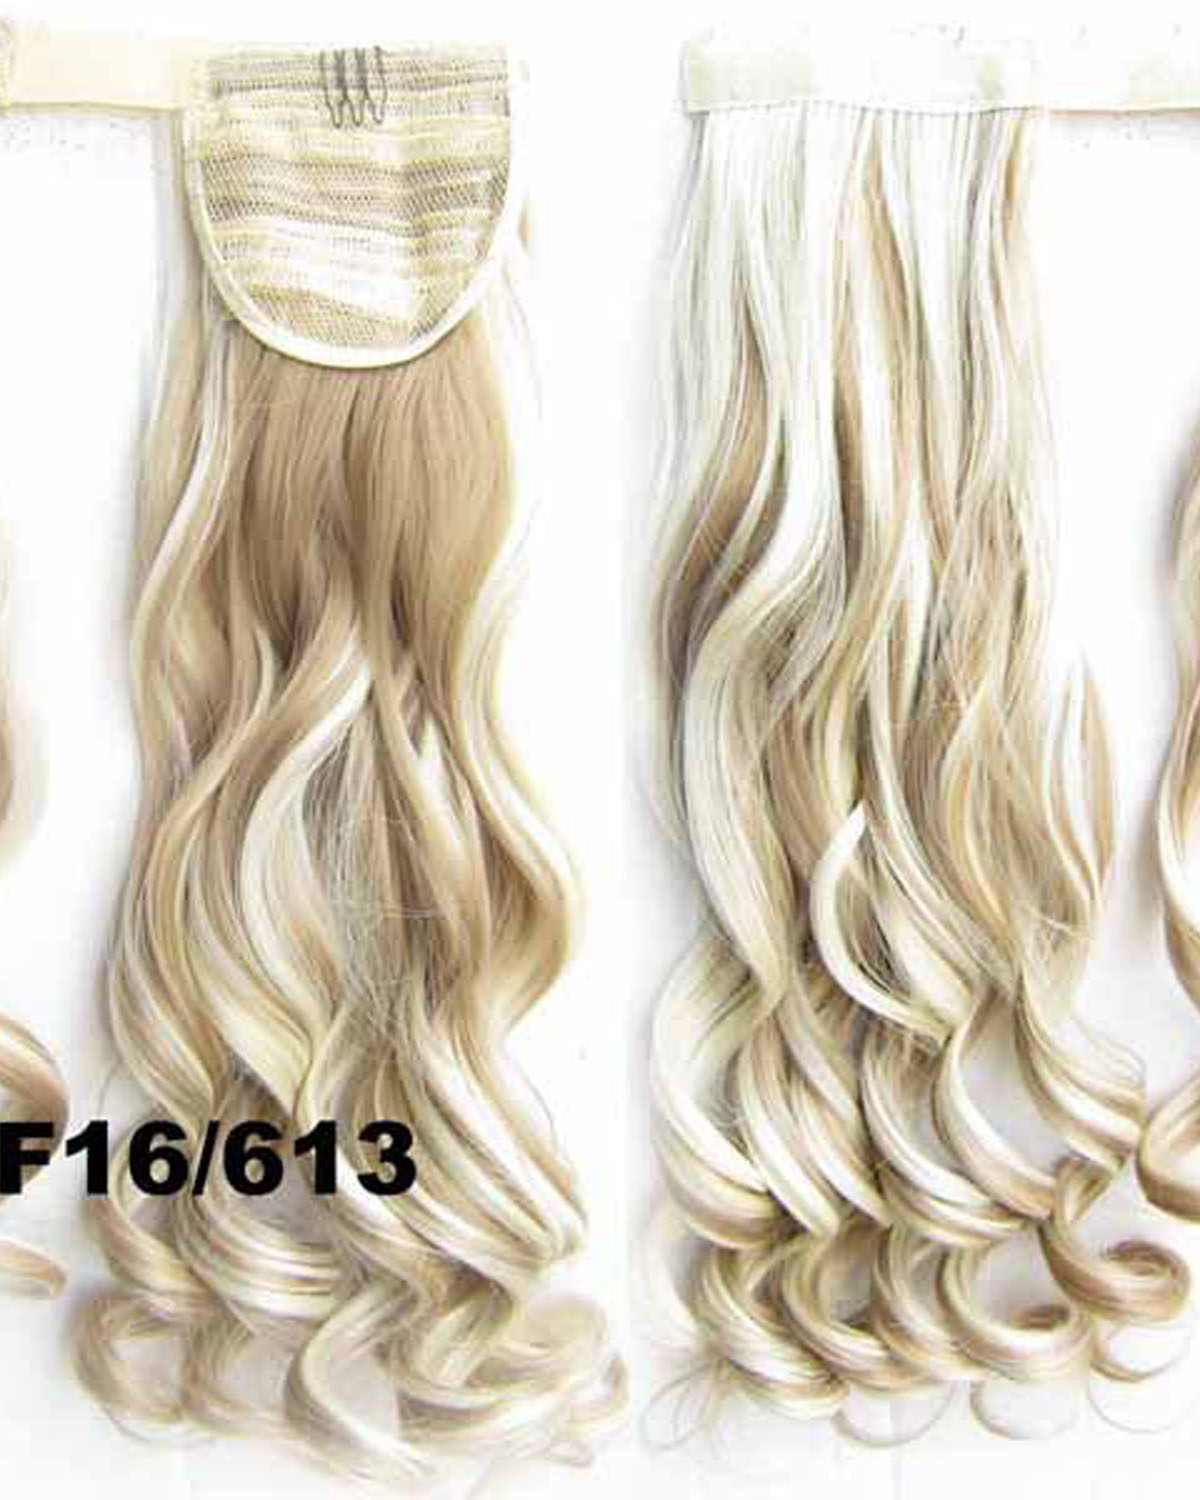 22 Inch Lady Vibrant Curly and Long Wrap Around Synthetic Hair Ponytail F16/613